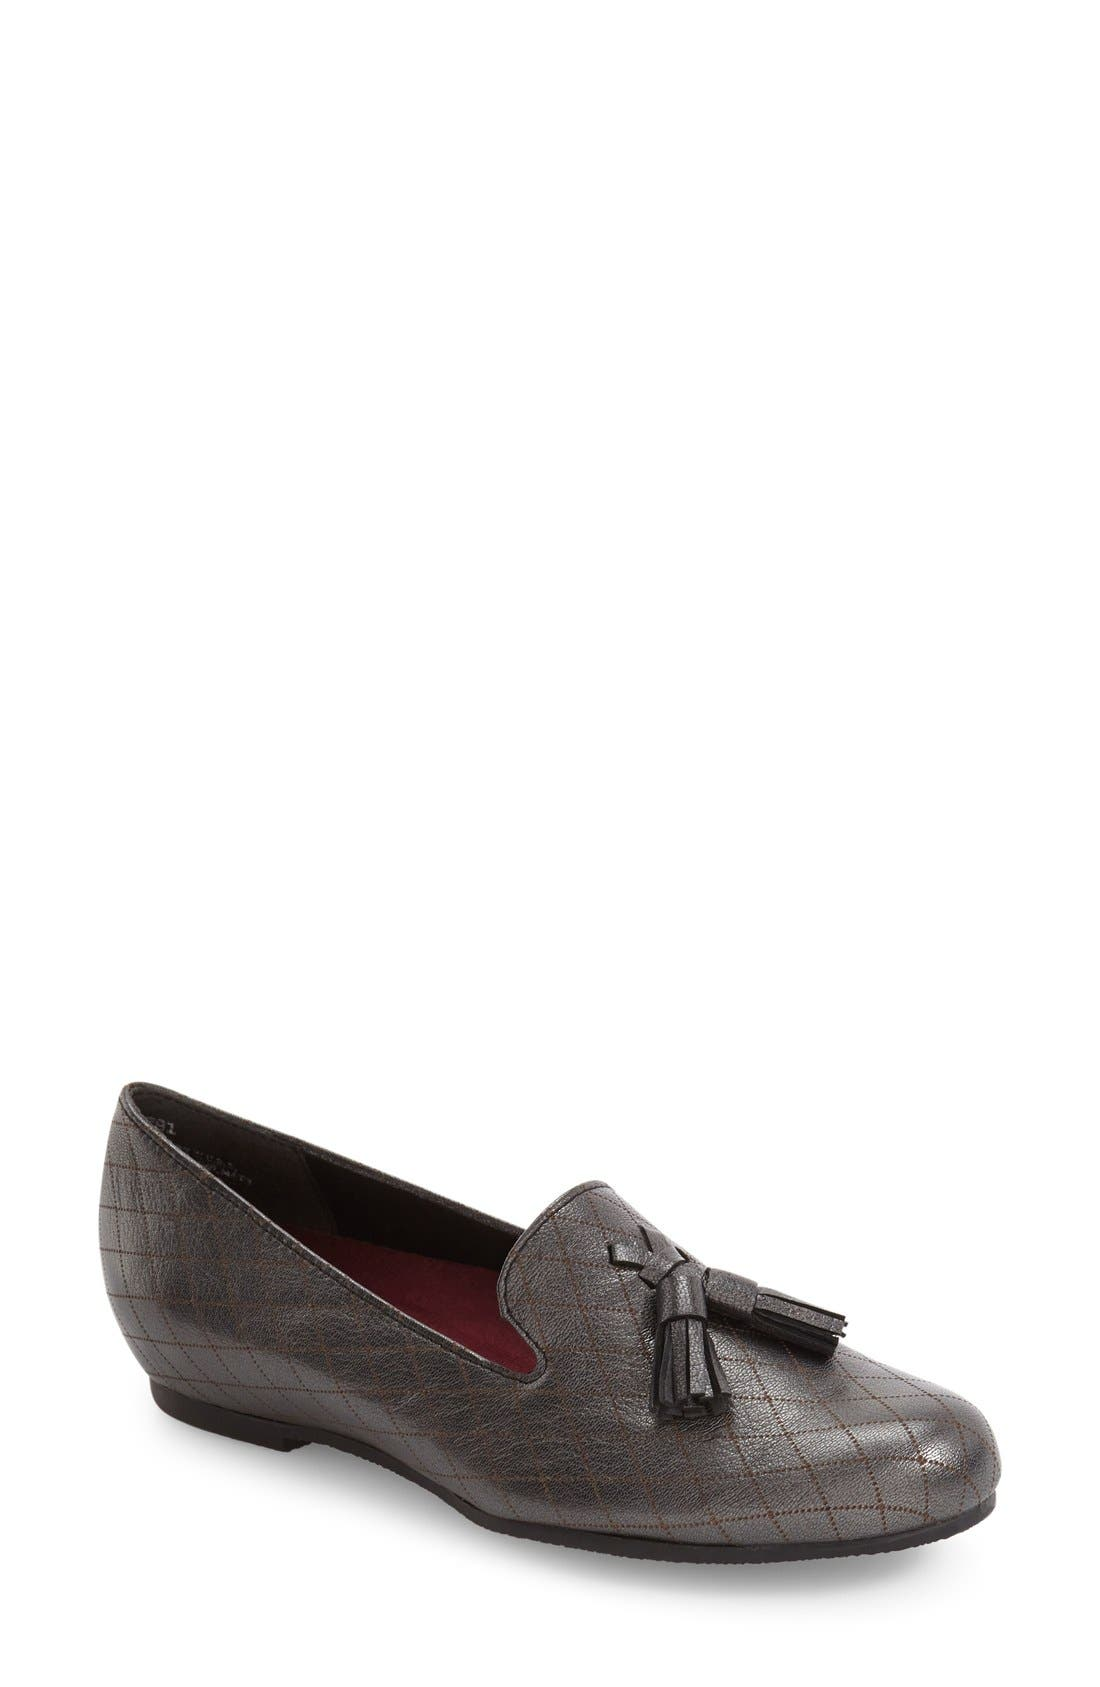 Tallie Tassel Loafer,                             Main thumbnail 1, color,                             Black Graphite Leather